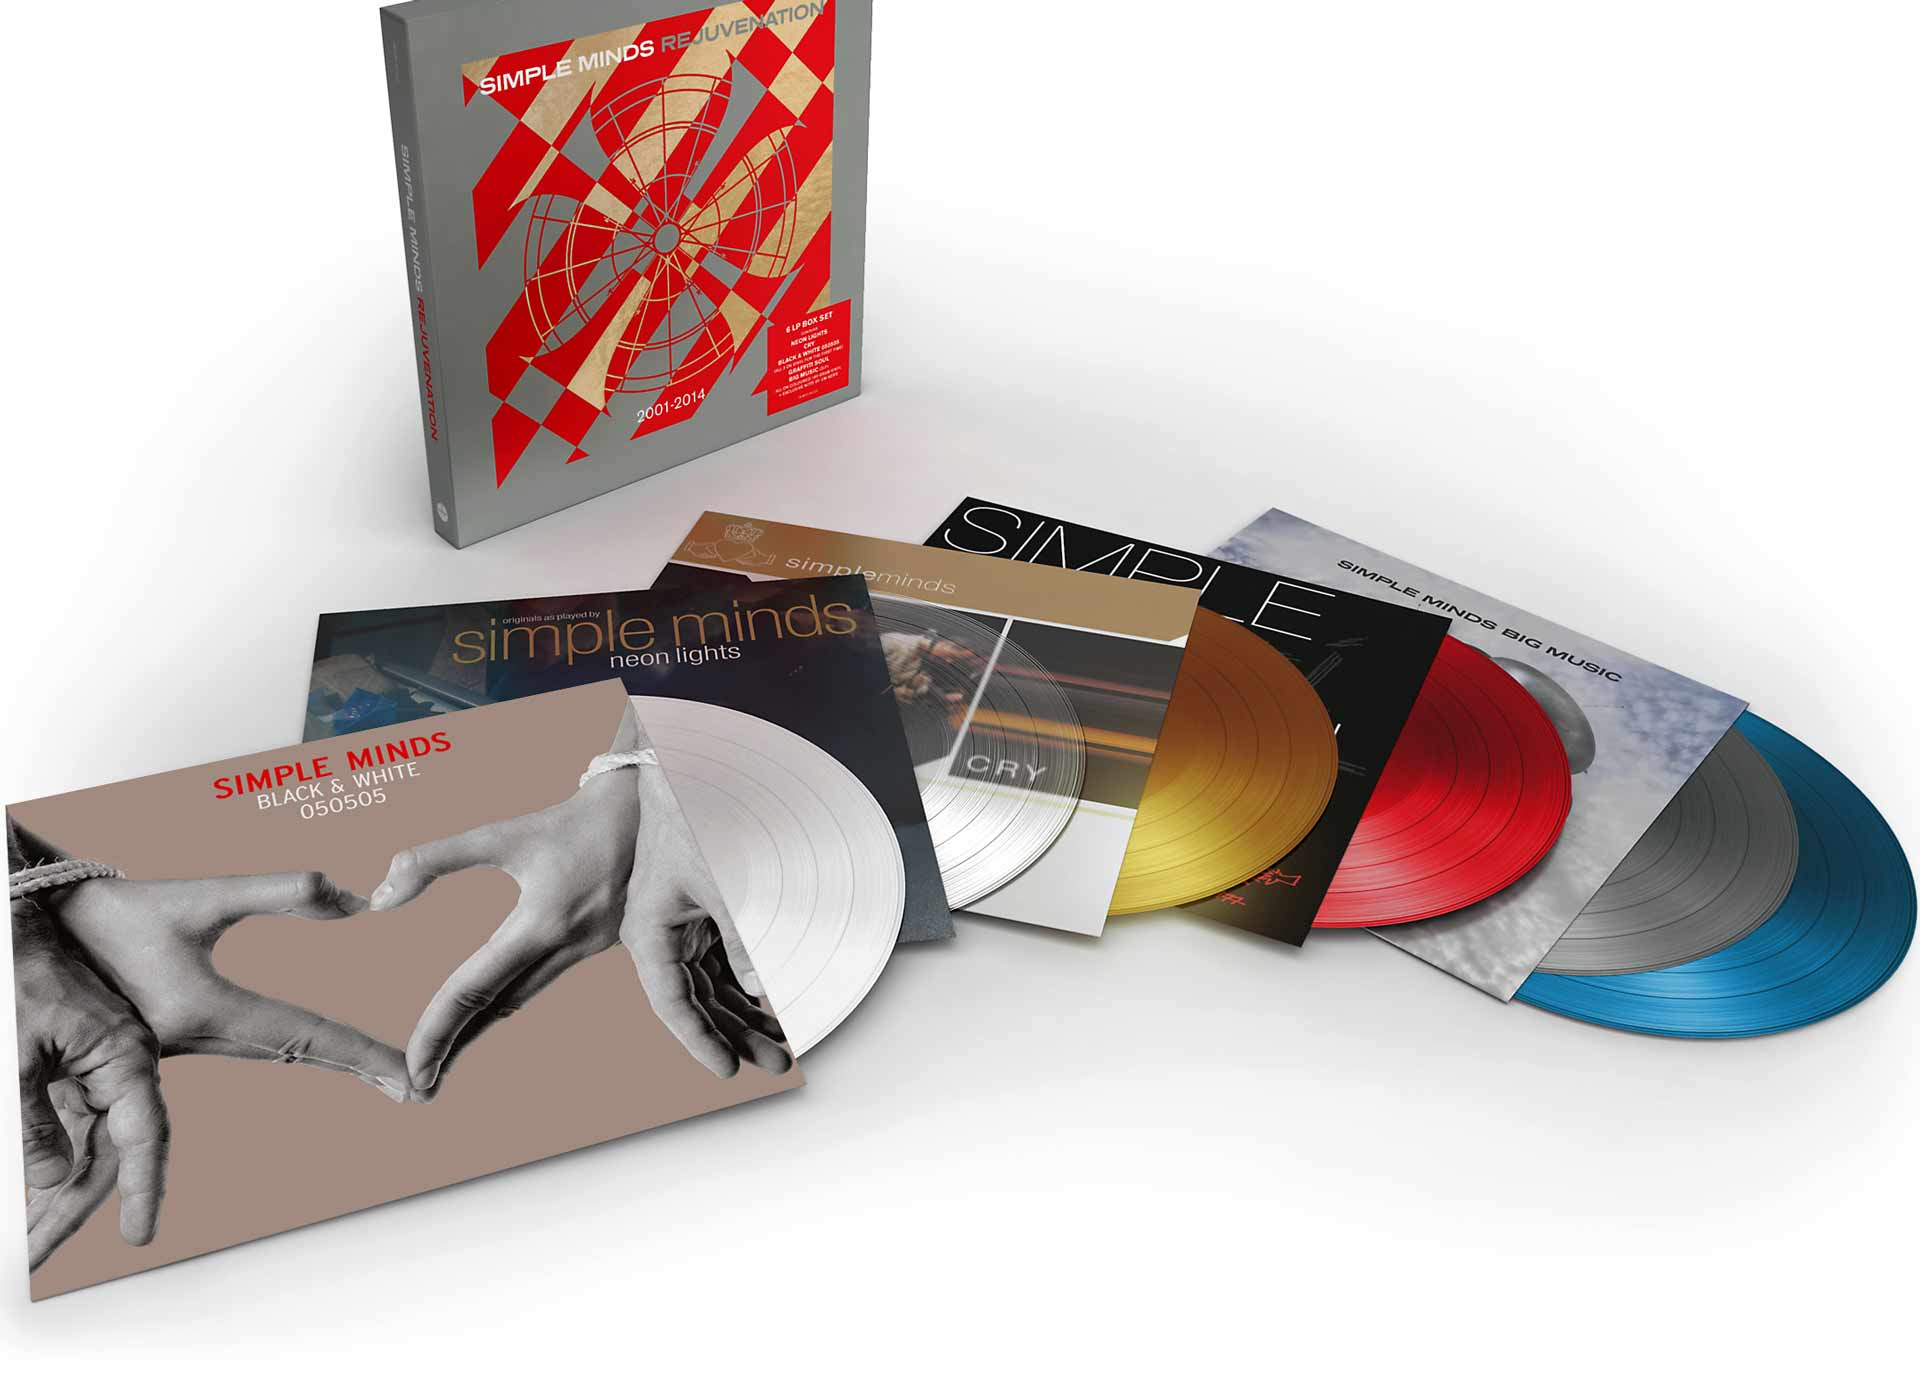 Rejuvenation Vinyl Box Set